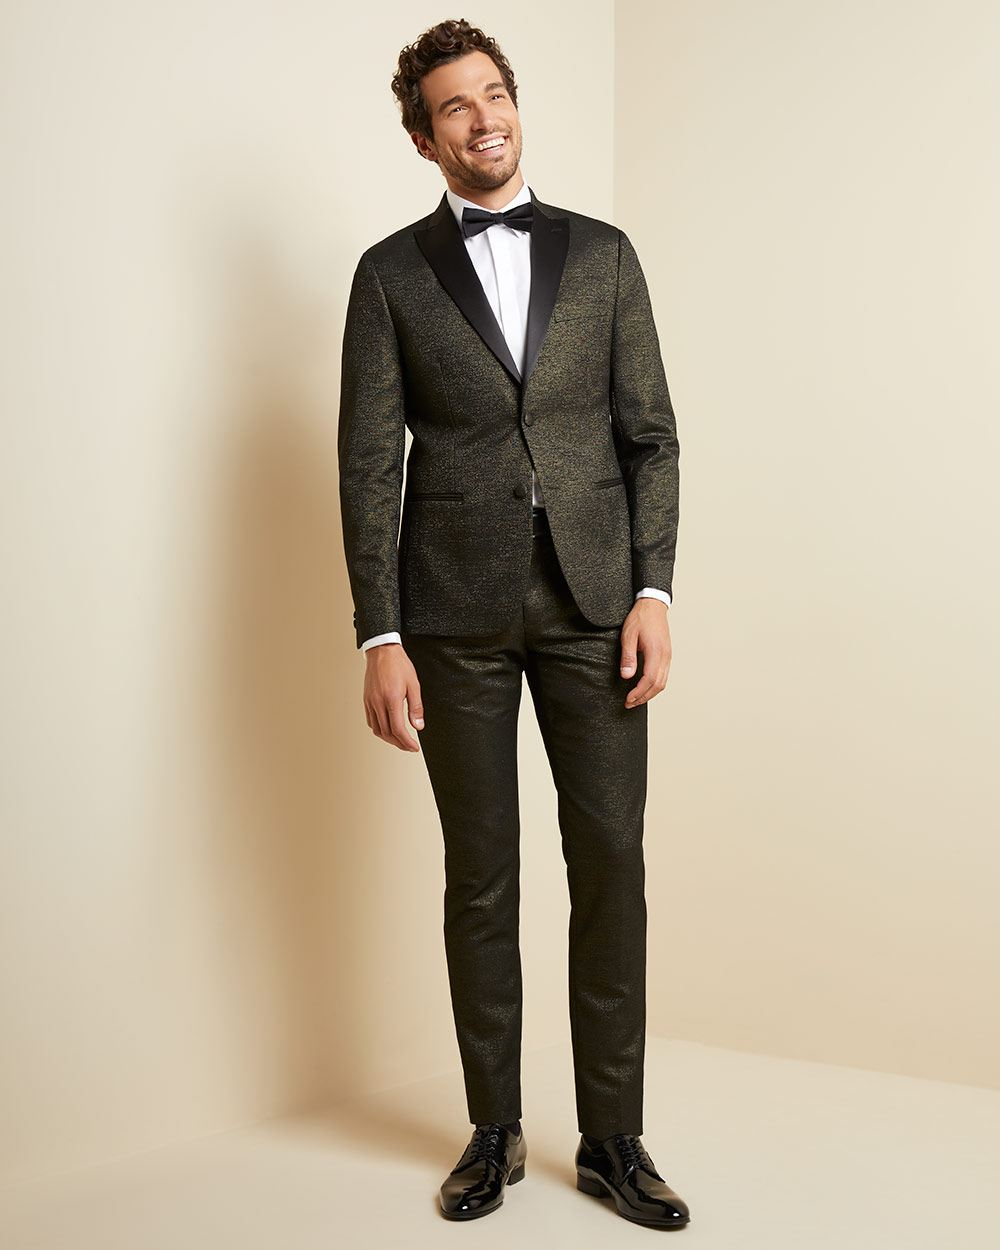 Slim fit black and gold tuxedo pant